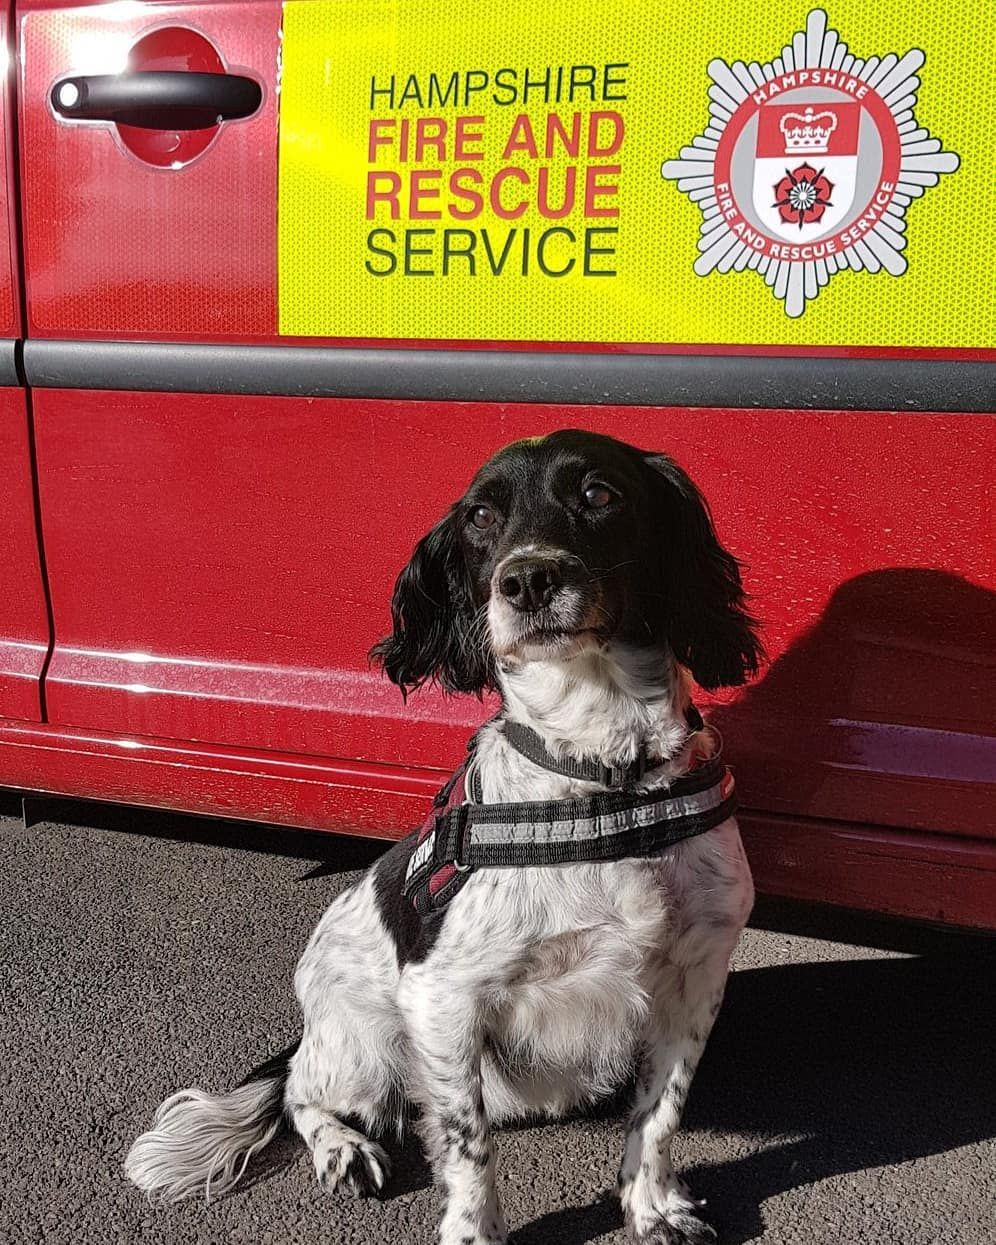 This Evening Search Dog Millie Has Been Assisting Hampshirefireservice Investigators And Hampshireconstabulary Csis At A Fire Dogs With Jobs Dog Search Dogs